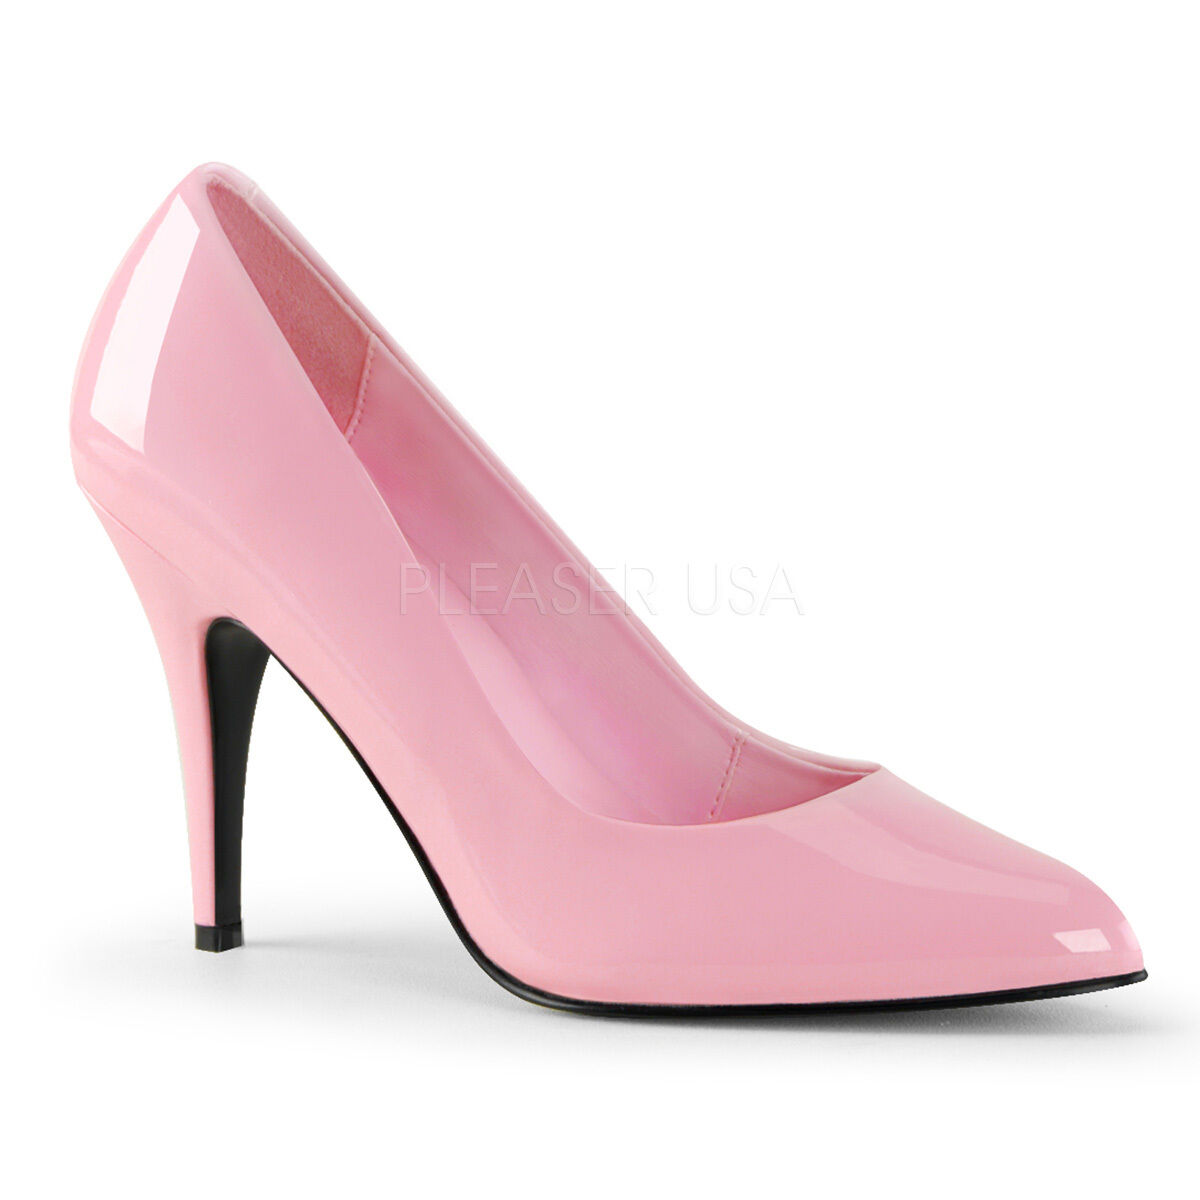 PLEASER VANITY 420 PINK LABEL 4